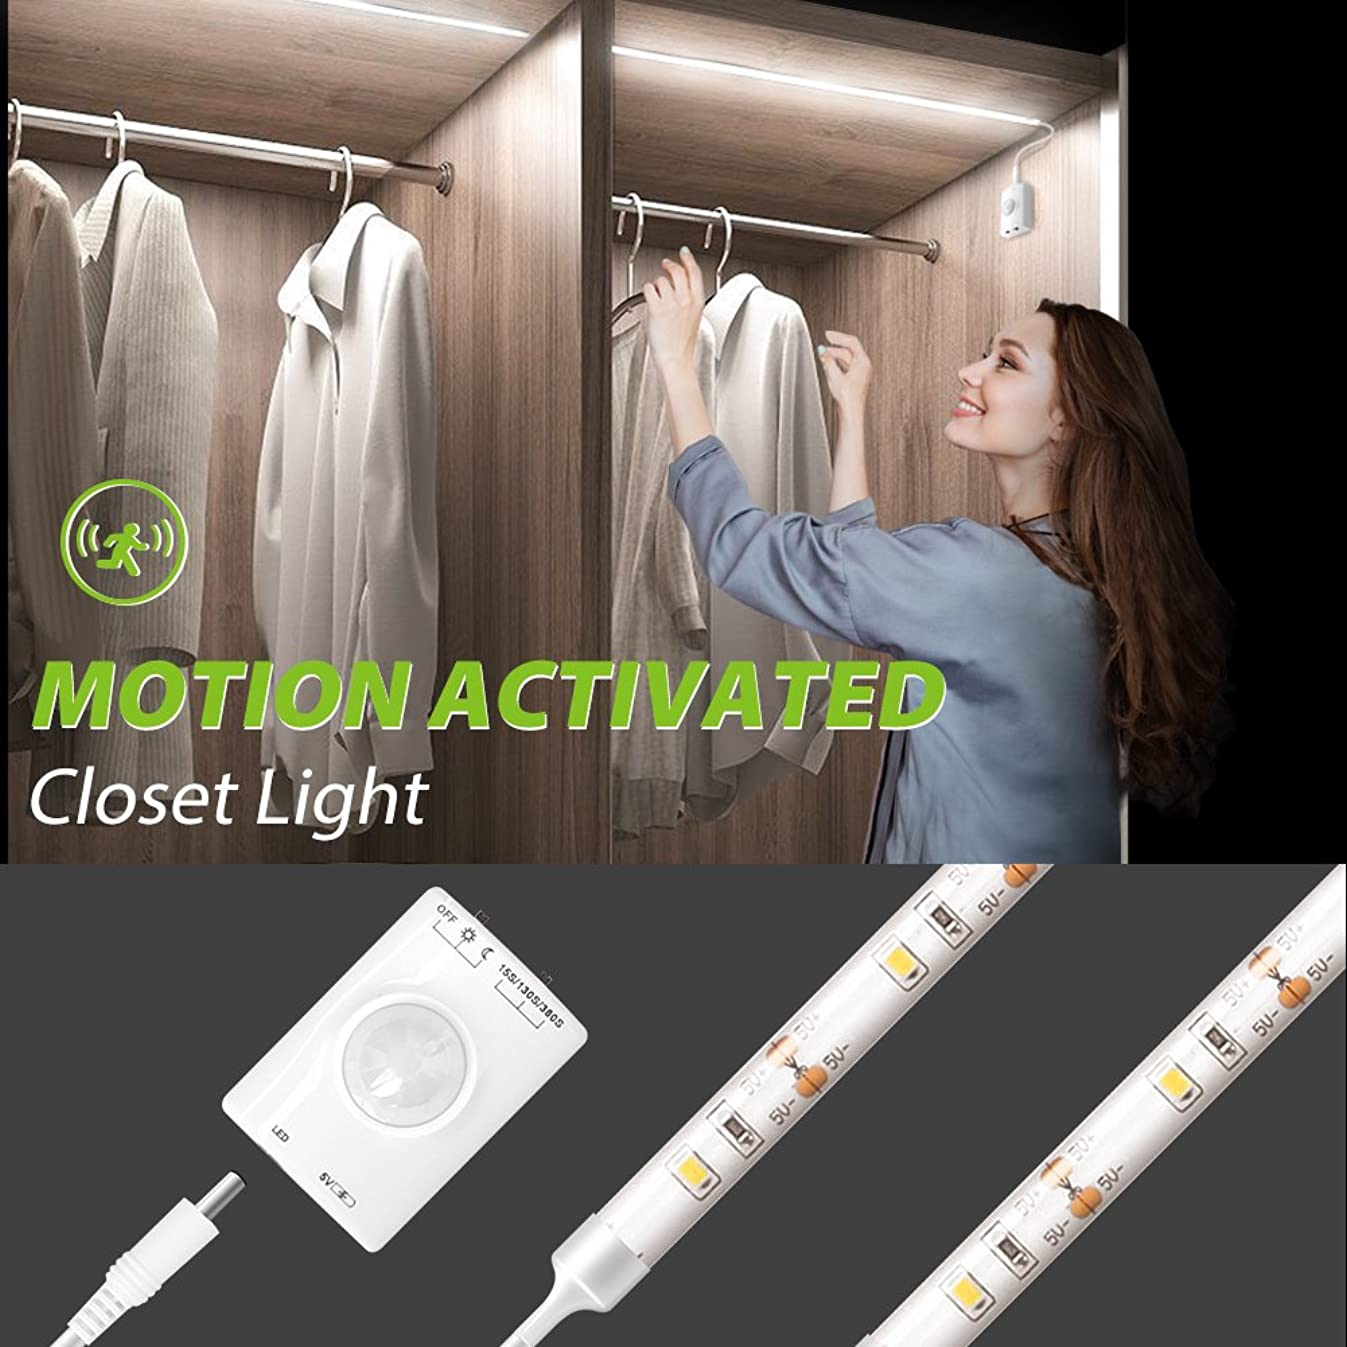 Motion Activated Closet Light, Megulla Motion Sensor LED Night Light -39inch, USB Rechargeable Battery, Stick Anywhere -Auto Shut Off Timer for Kitchen Cabinets, Laundry and Garage -1Pack, Cool White